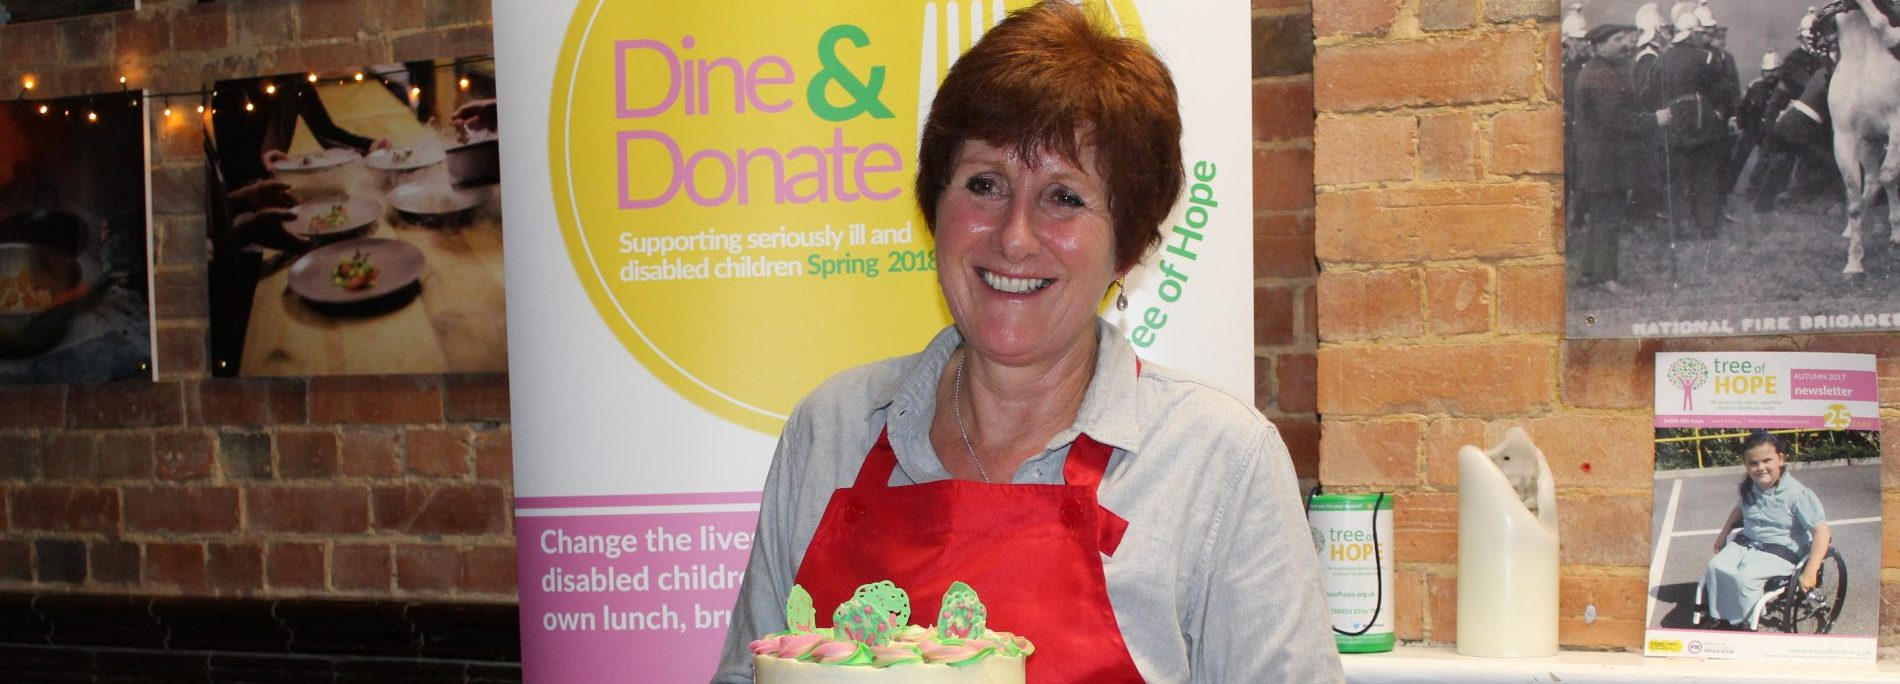 Jane Beedle Supports Dine and Donate